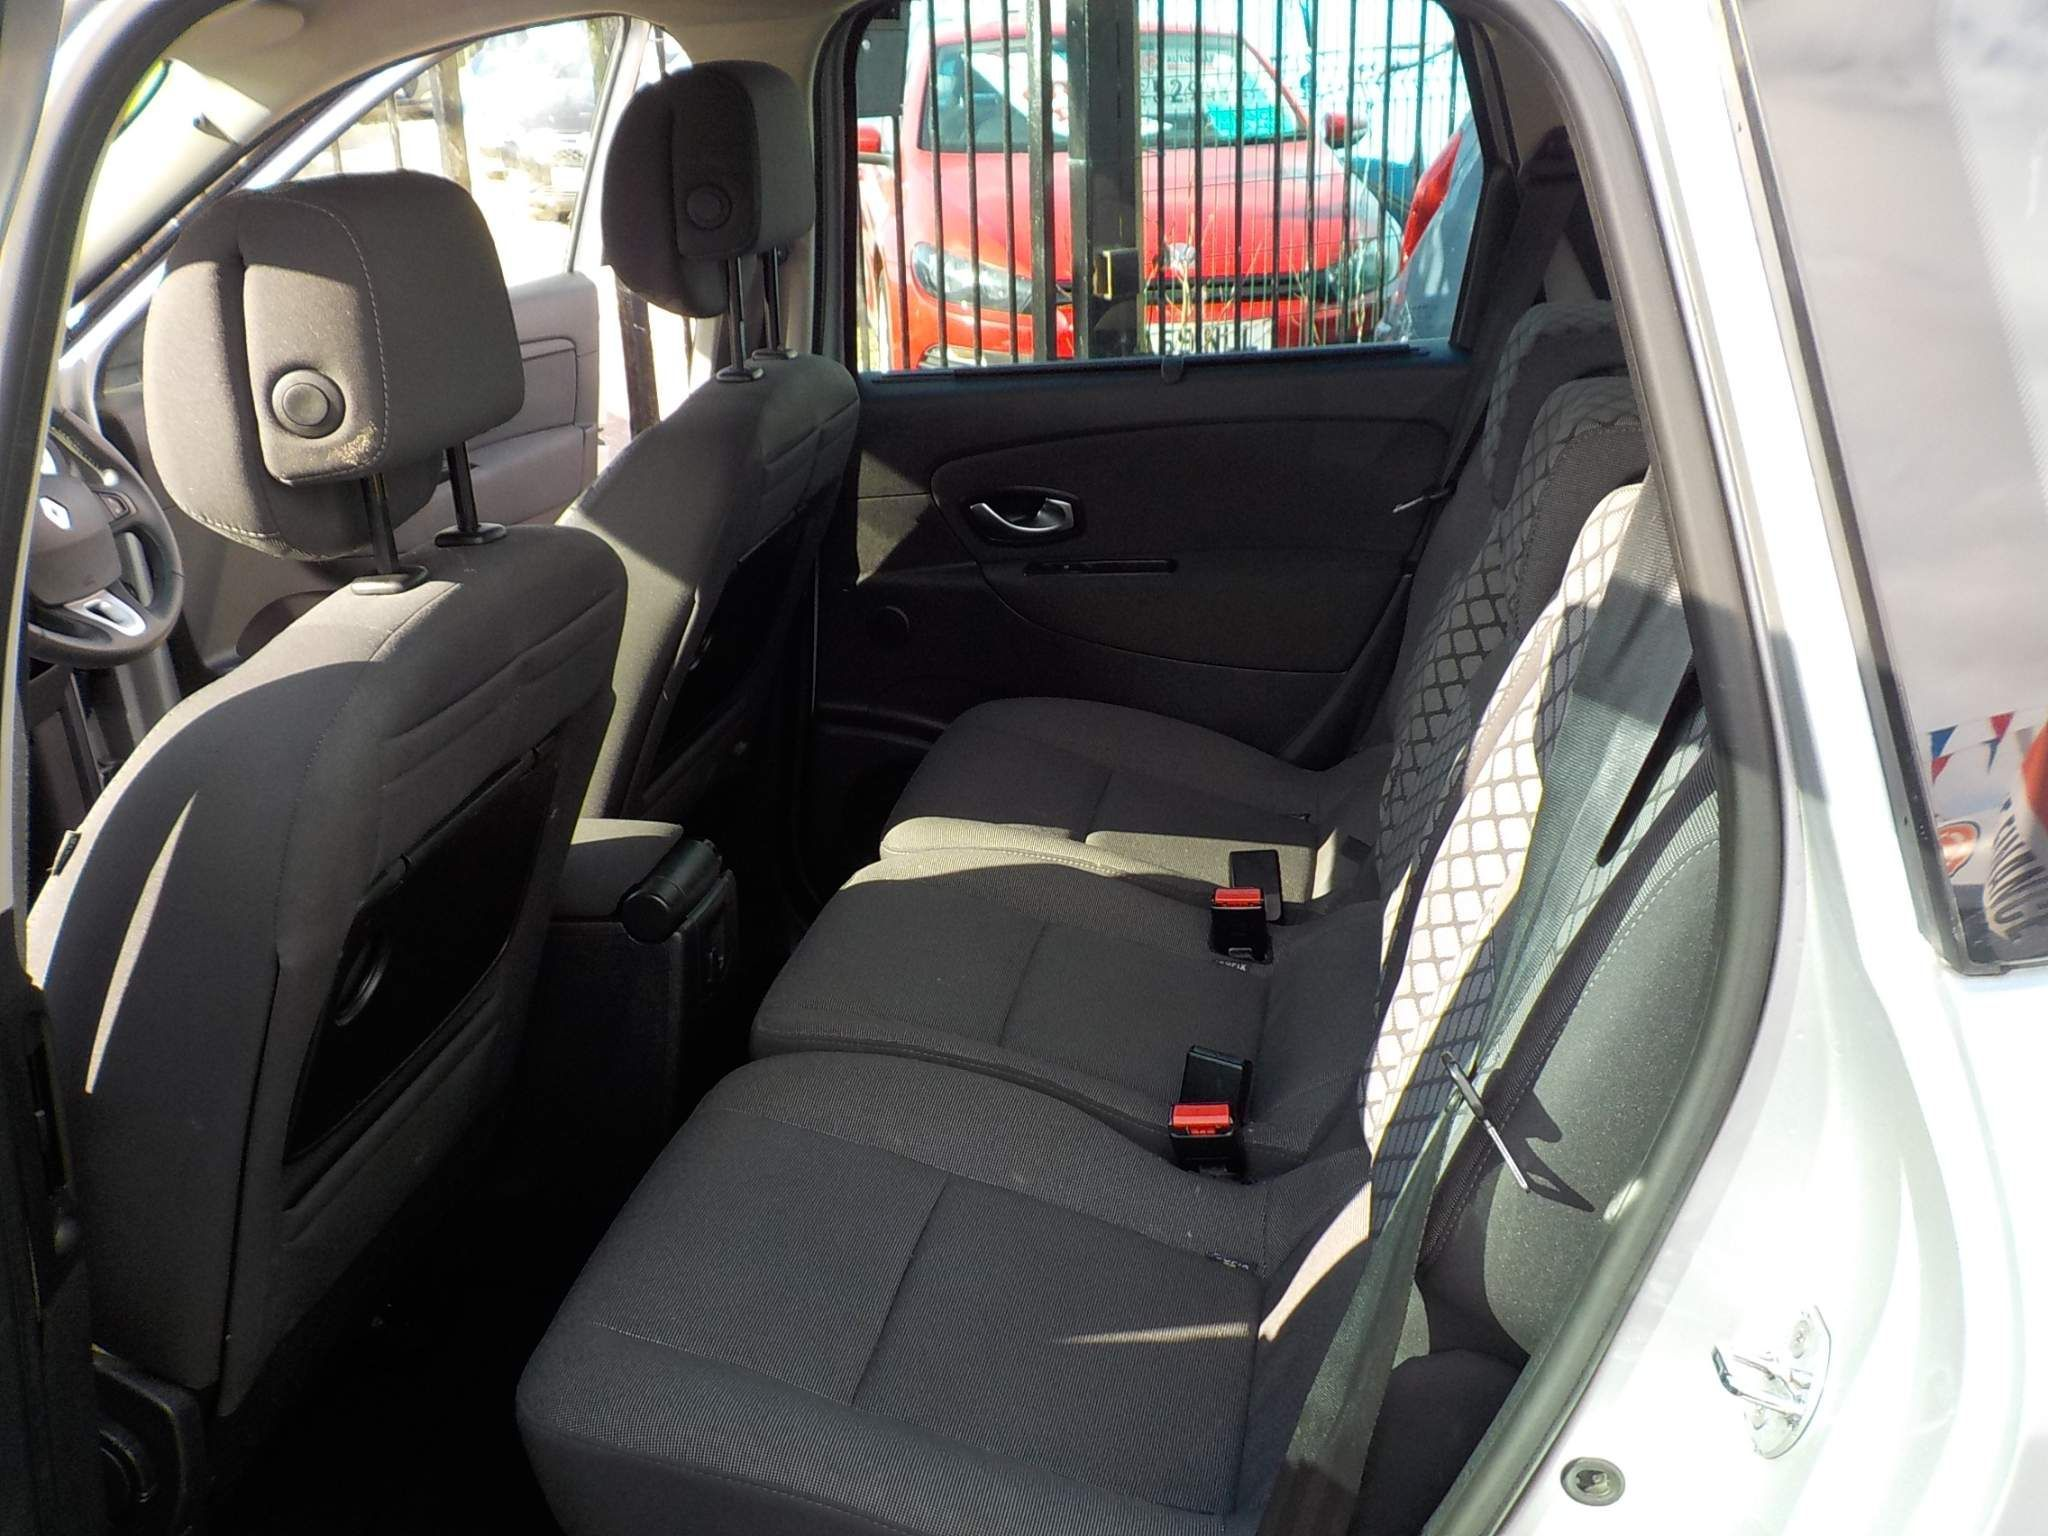 Renault Scenic 1.5 dCi I-Music 5dr